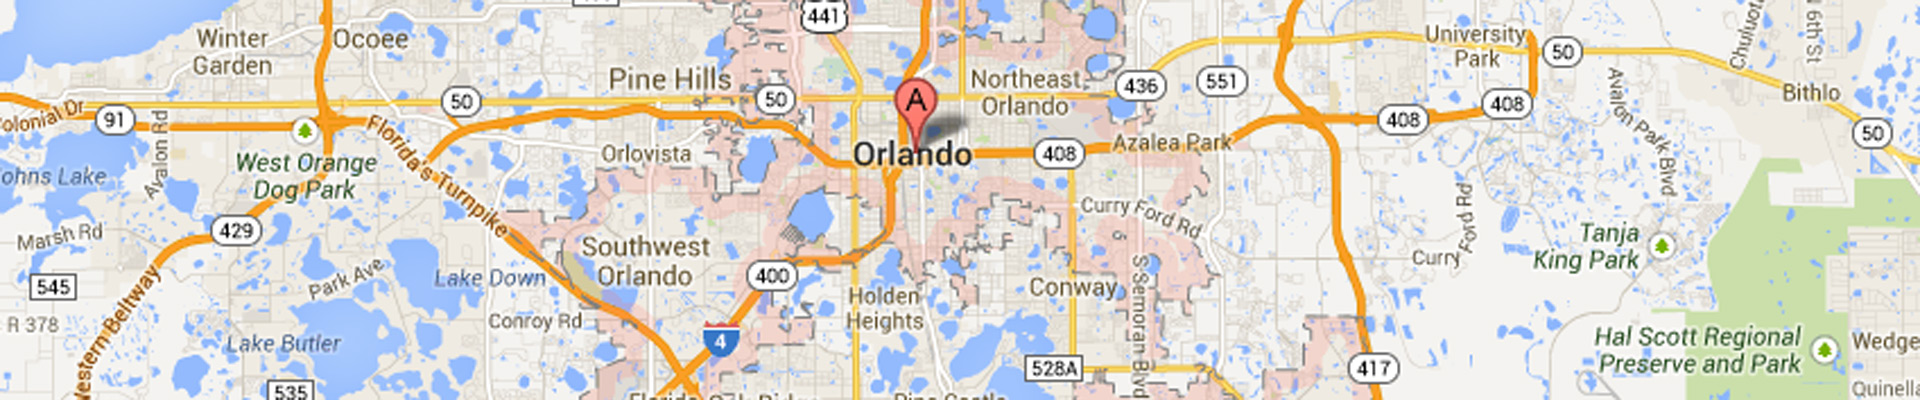 Orlando Subway Locations